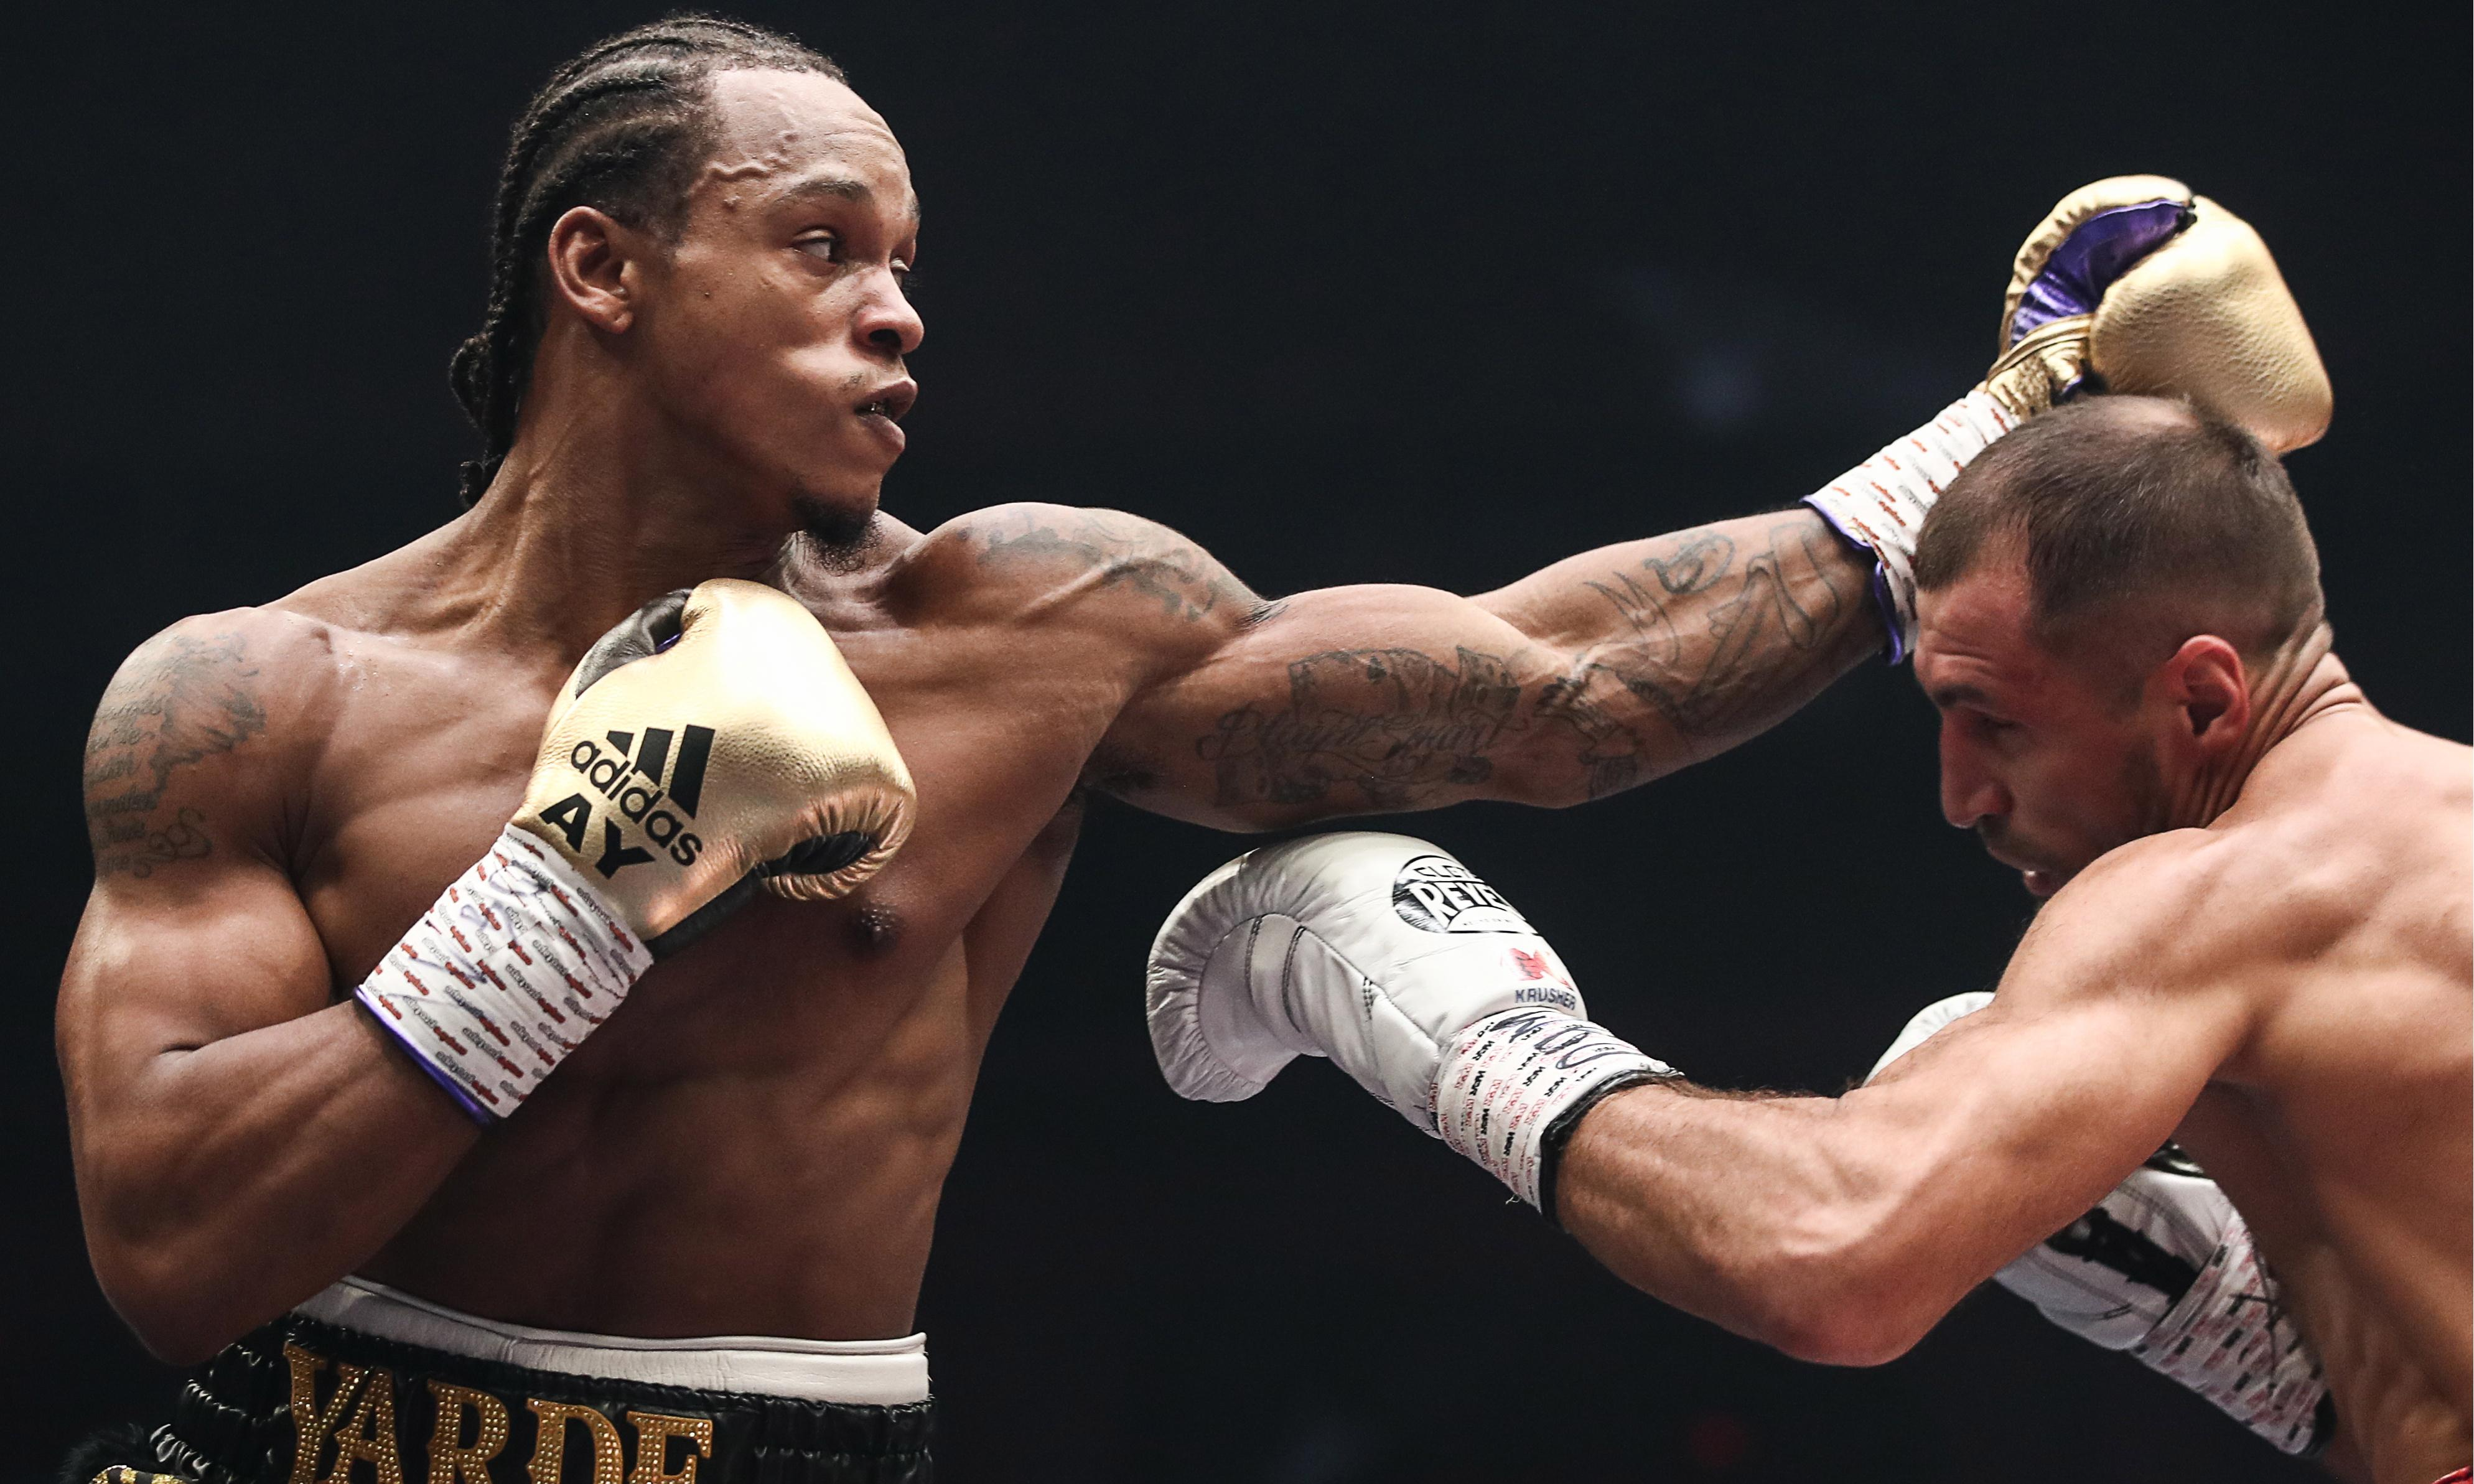 Anthony Yarde brave but beaten in WBO title fight against Sergey Kovalev